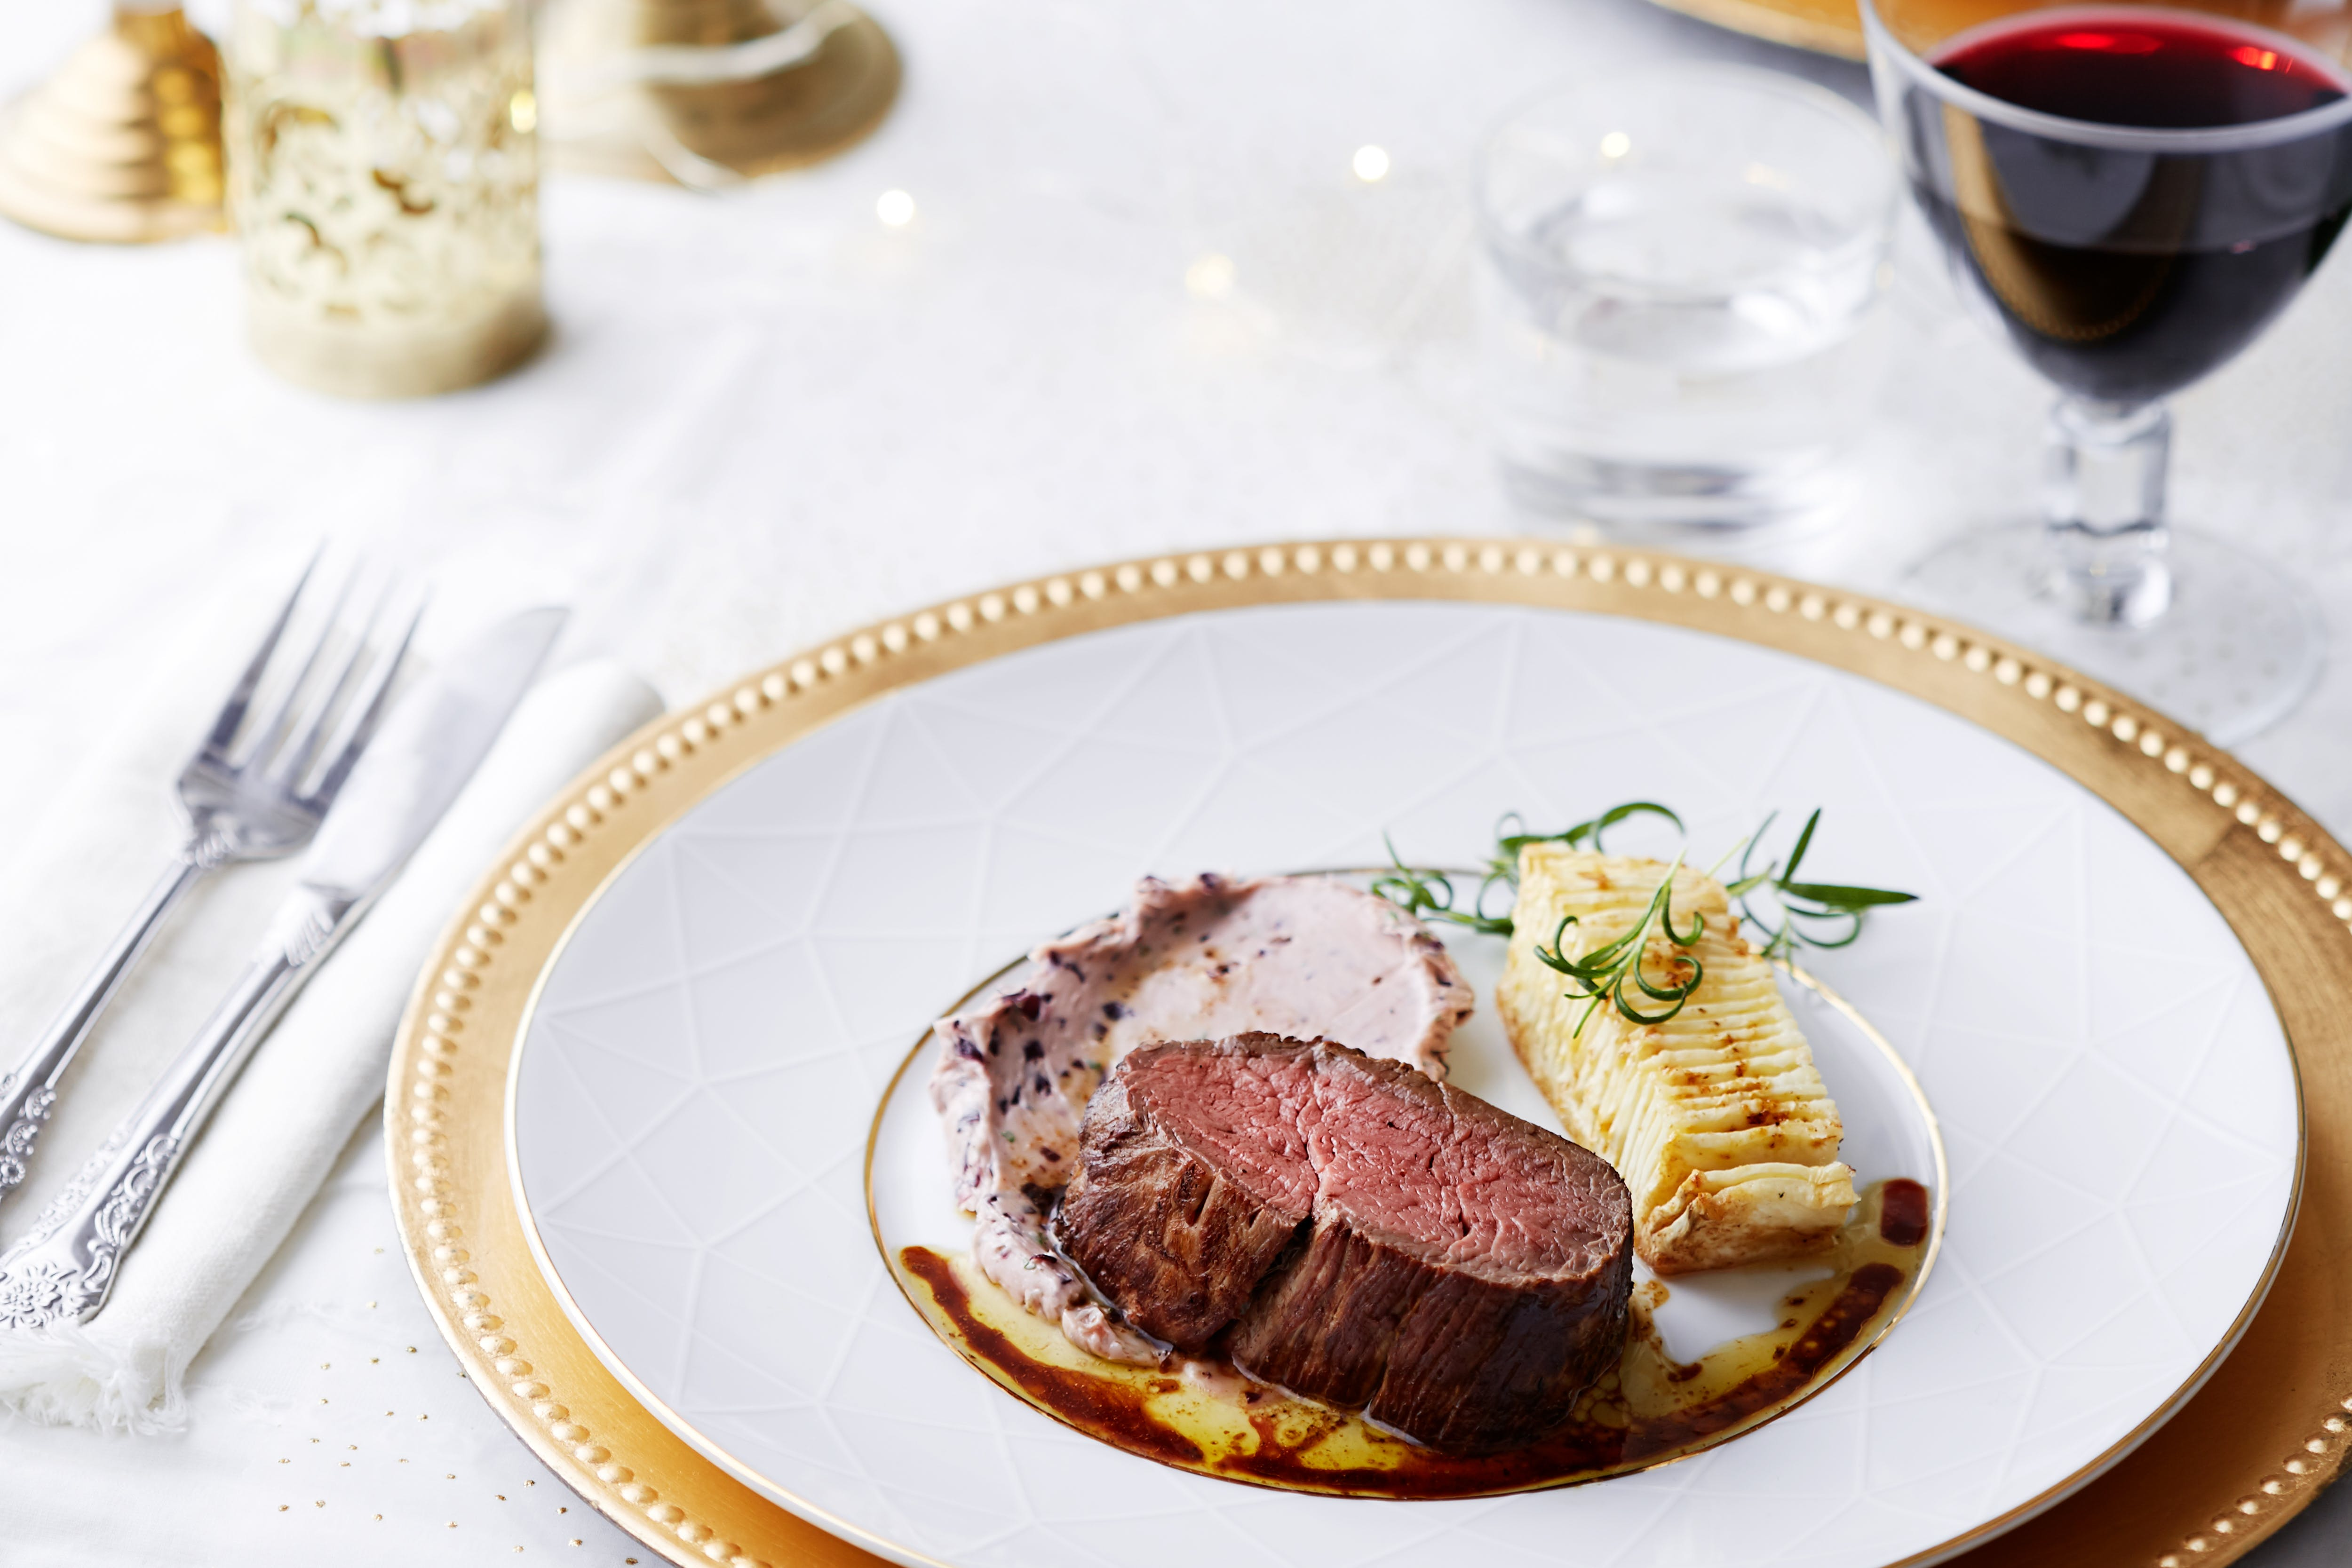 Keto chateaubriand with hasselback celery root and red wine butter